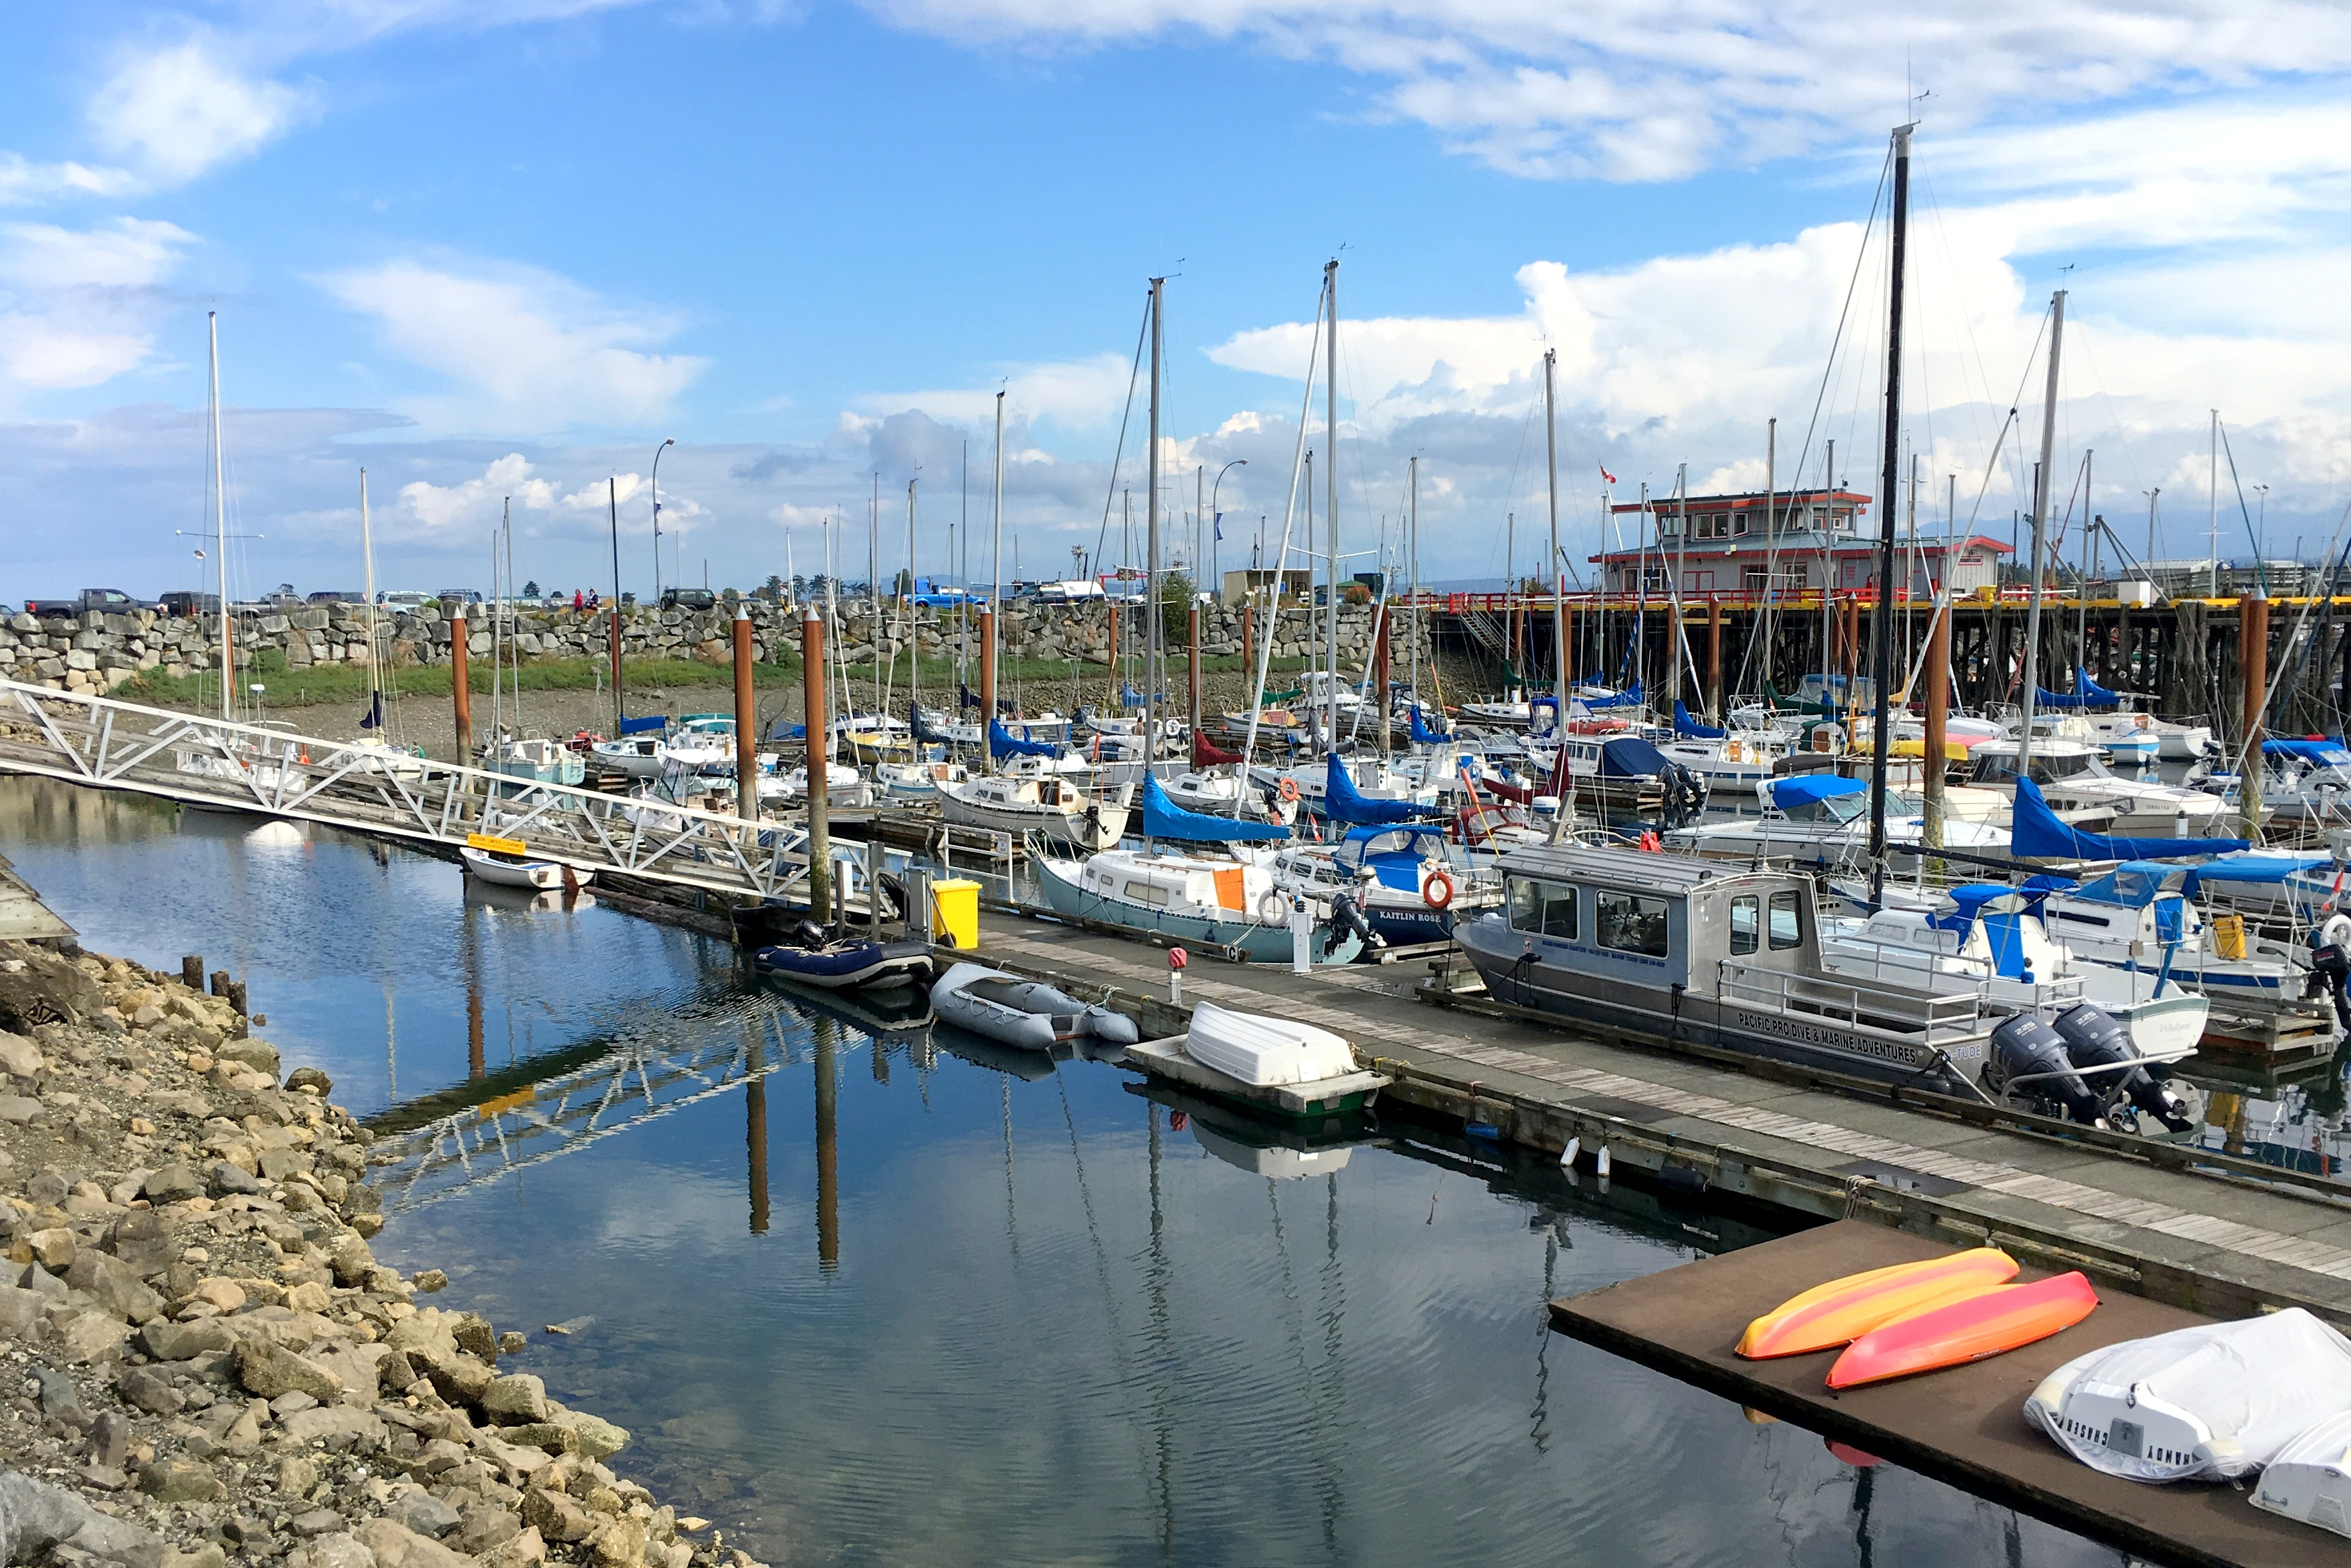 #ExploreBCbyBus – A family getaway to the Comox Valley on Vancouver Island